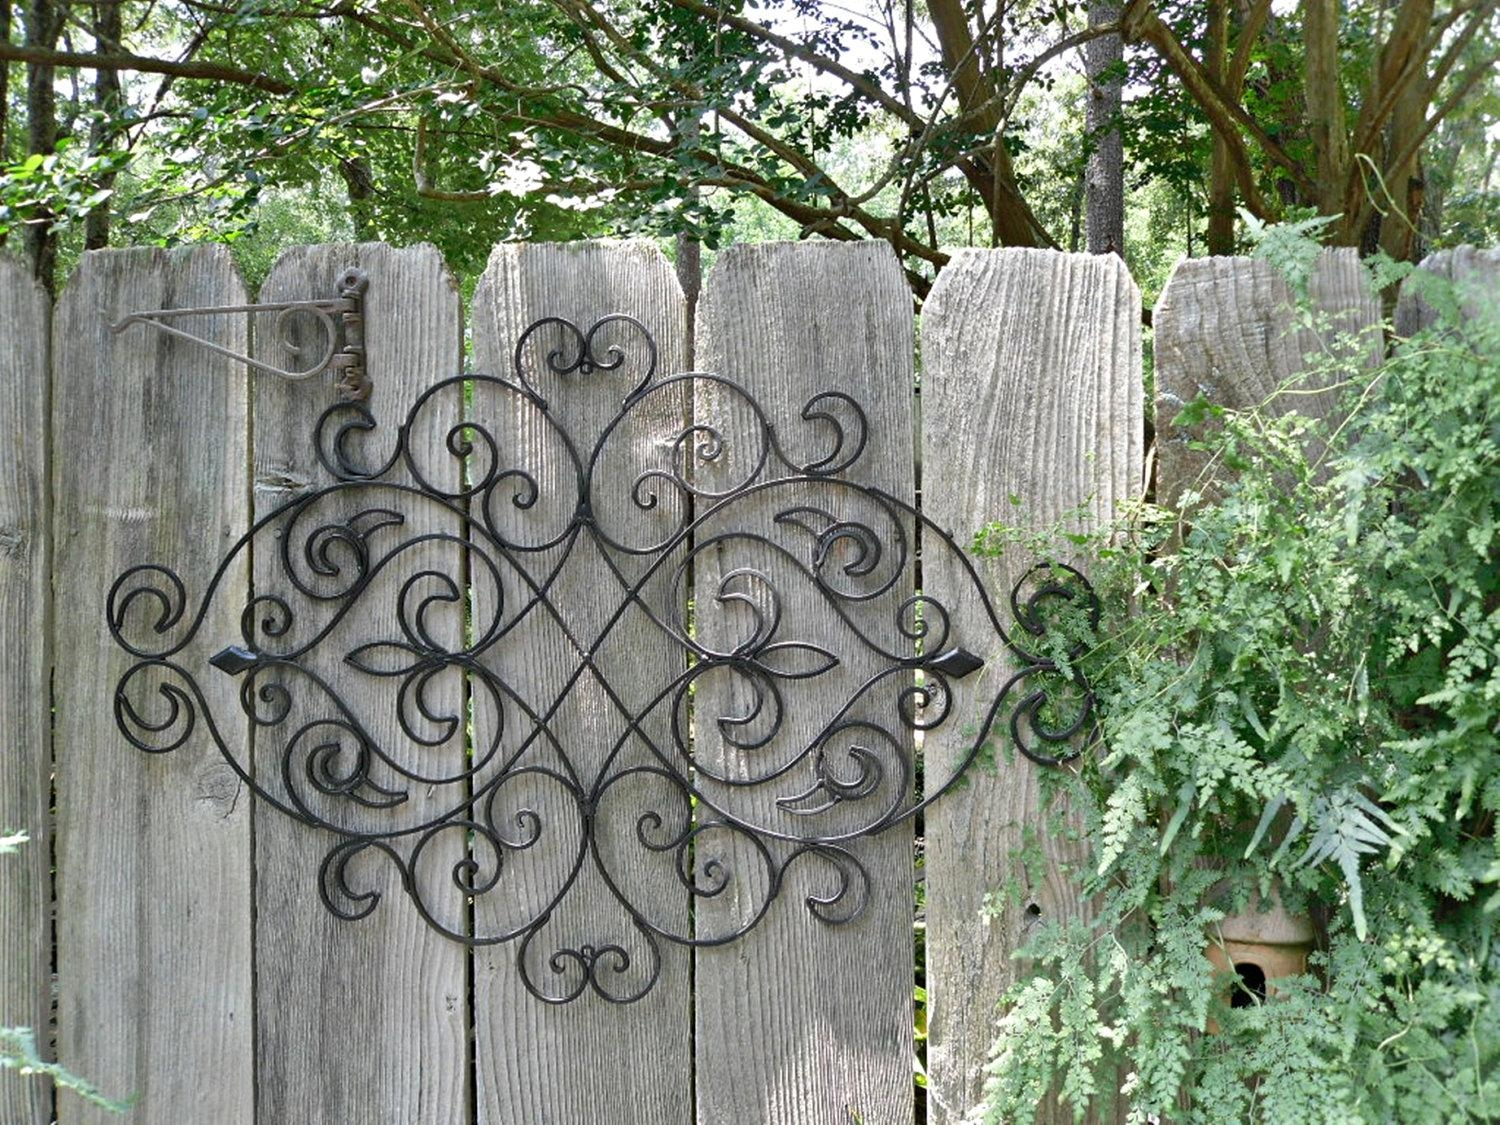 Garden Gate Wall Decor Wrought Iron Kitchen Wall Decor – Miserv In Iron Gate Wall Art (Image 7 of 20)